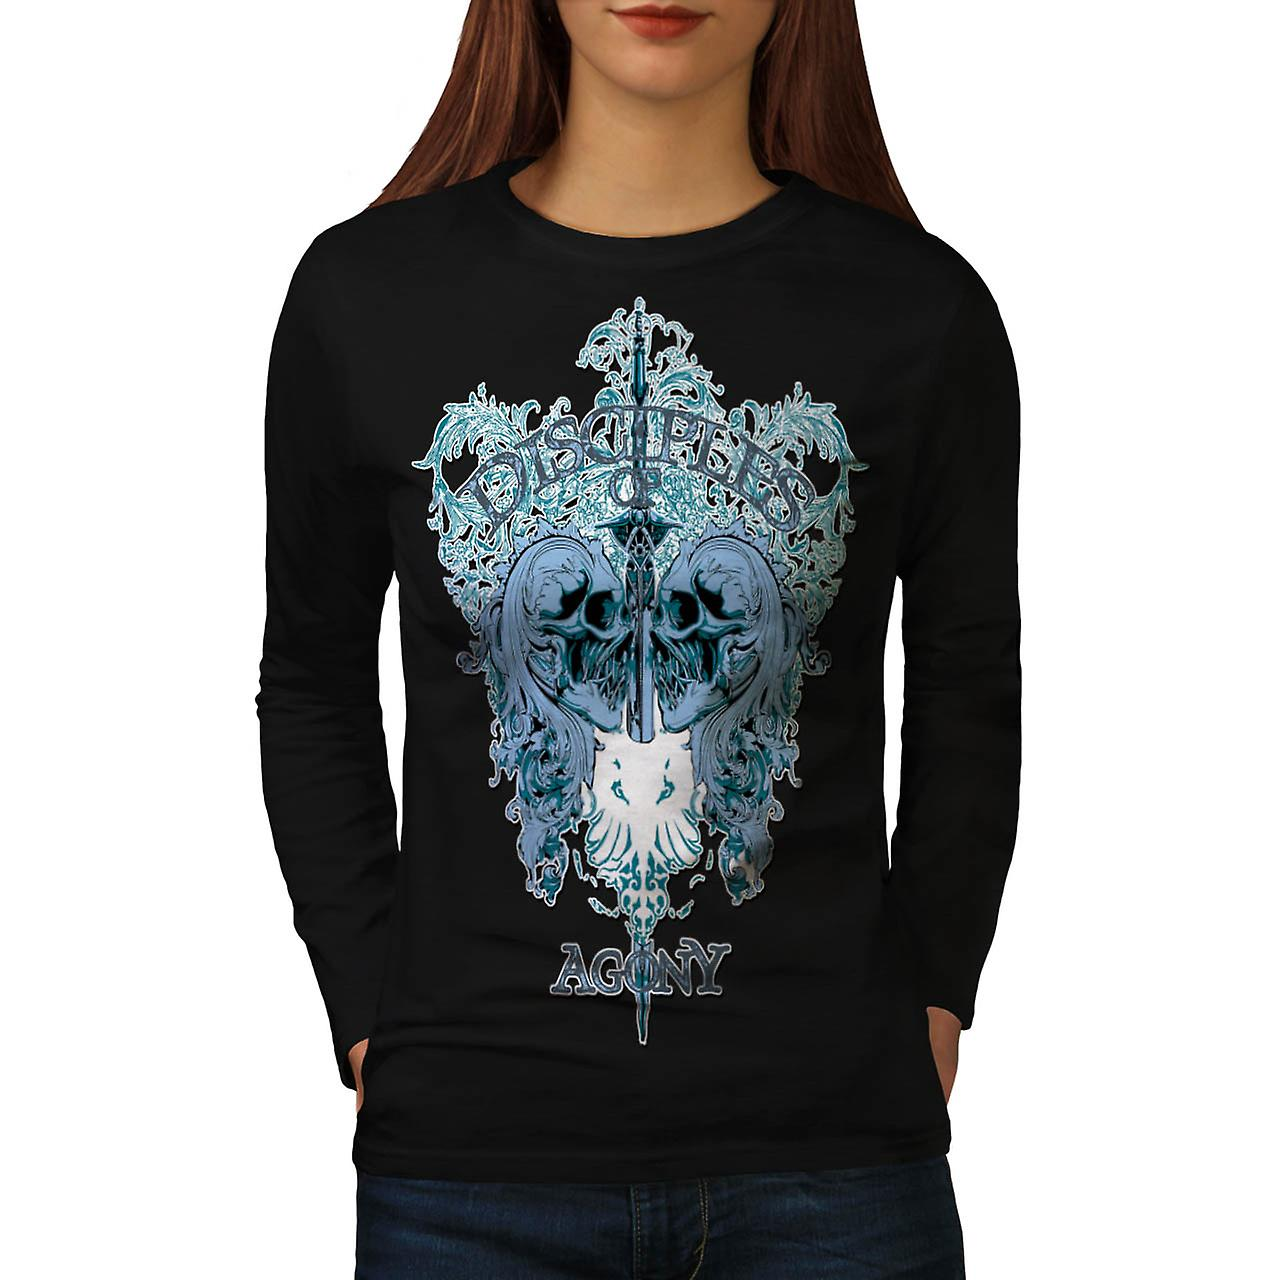 Disciples Of Agony Follow Lead Women Black Long Sleeve T-shirt | Wellcoda